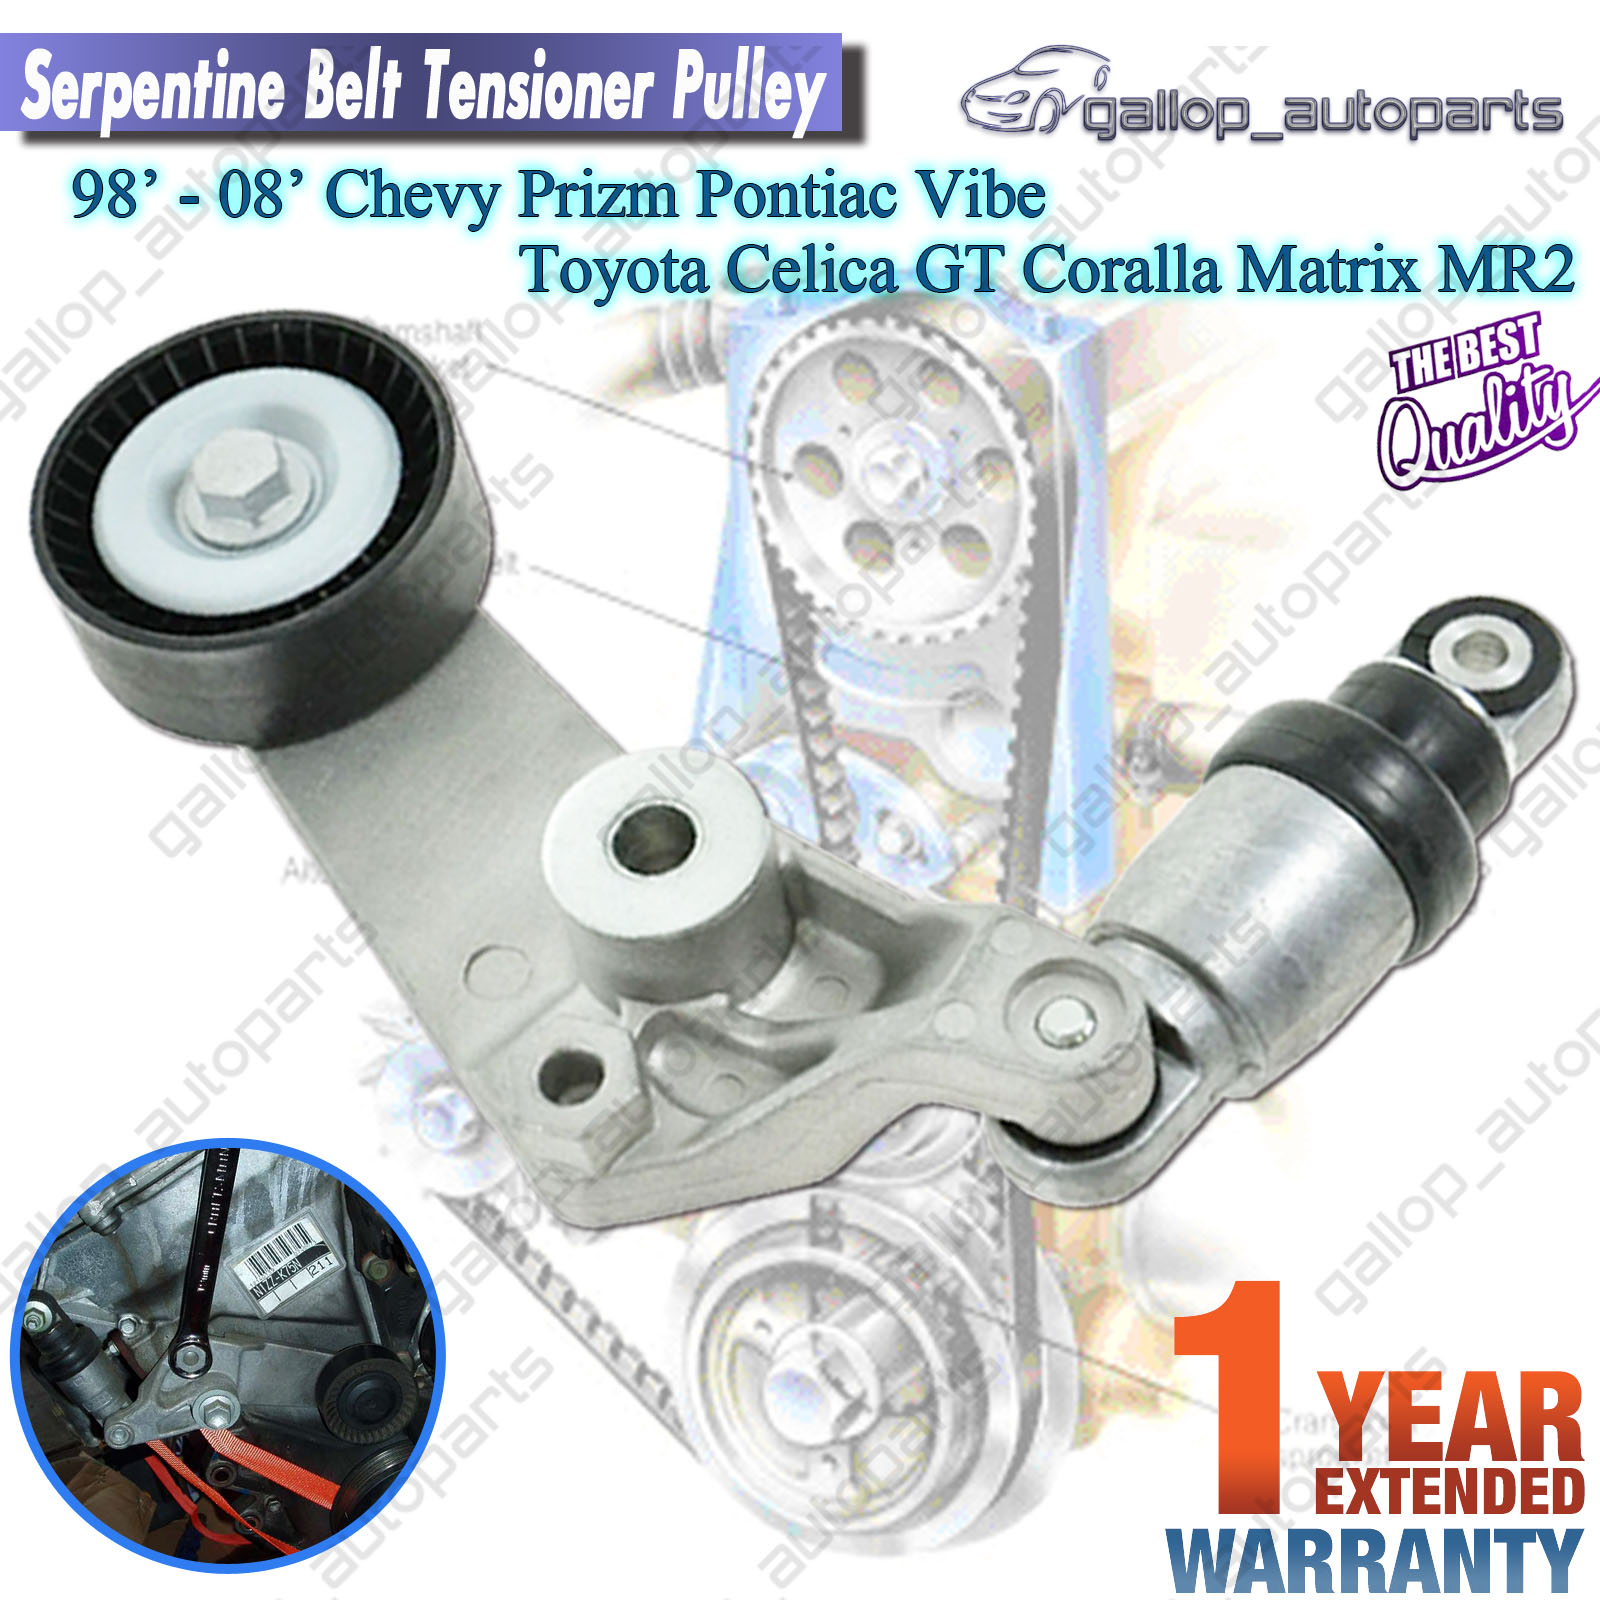 fan belt routing additionally  additionally  moreover  additionally serpentine belt replacement diagram wiring diagram and engine likewise 1994 2002 suzuki esteem1 also 2009 06 27 223018 2009 06 27 162832 likewise  further  likewise TN TA001 gallop as well . on 06 acura tsx serpentine belt diagram